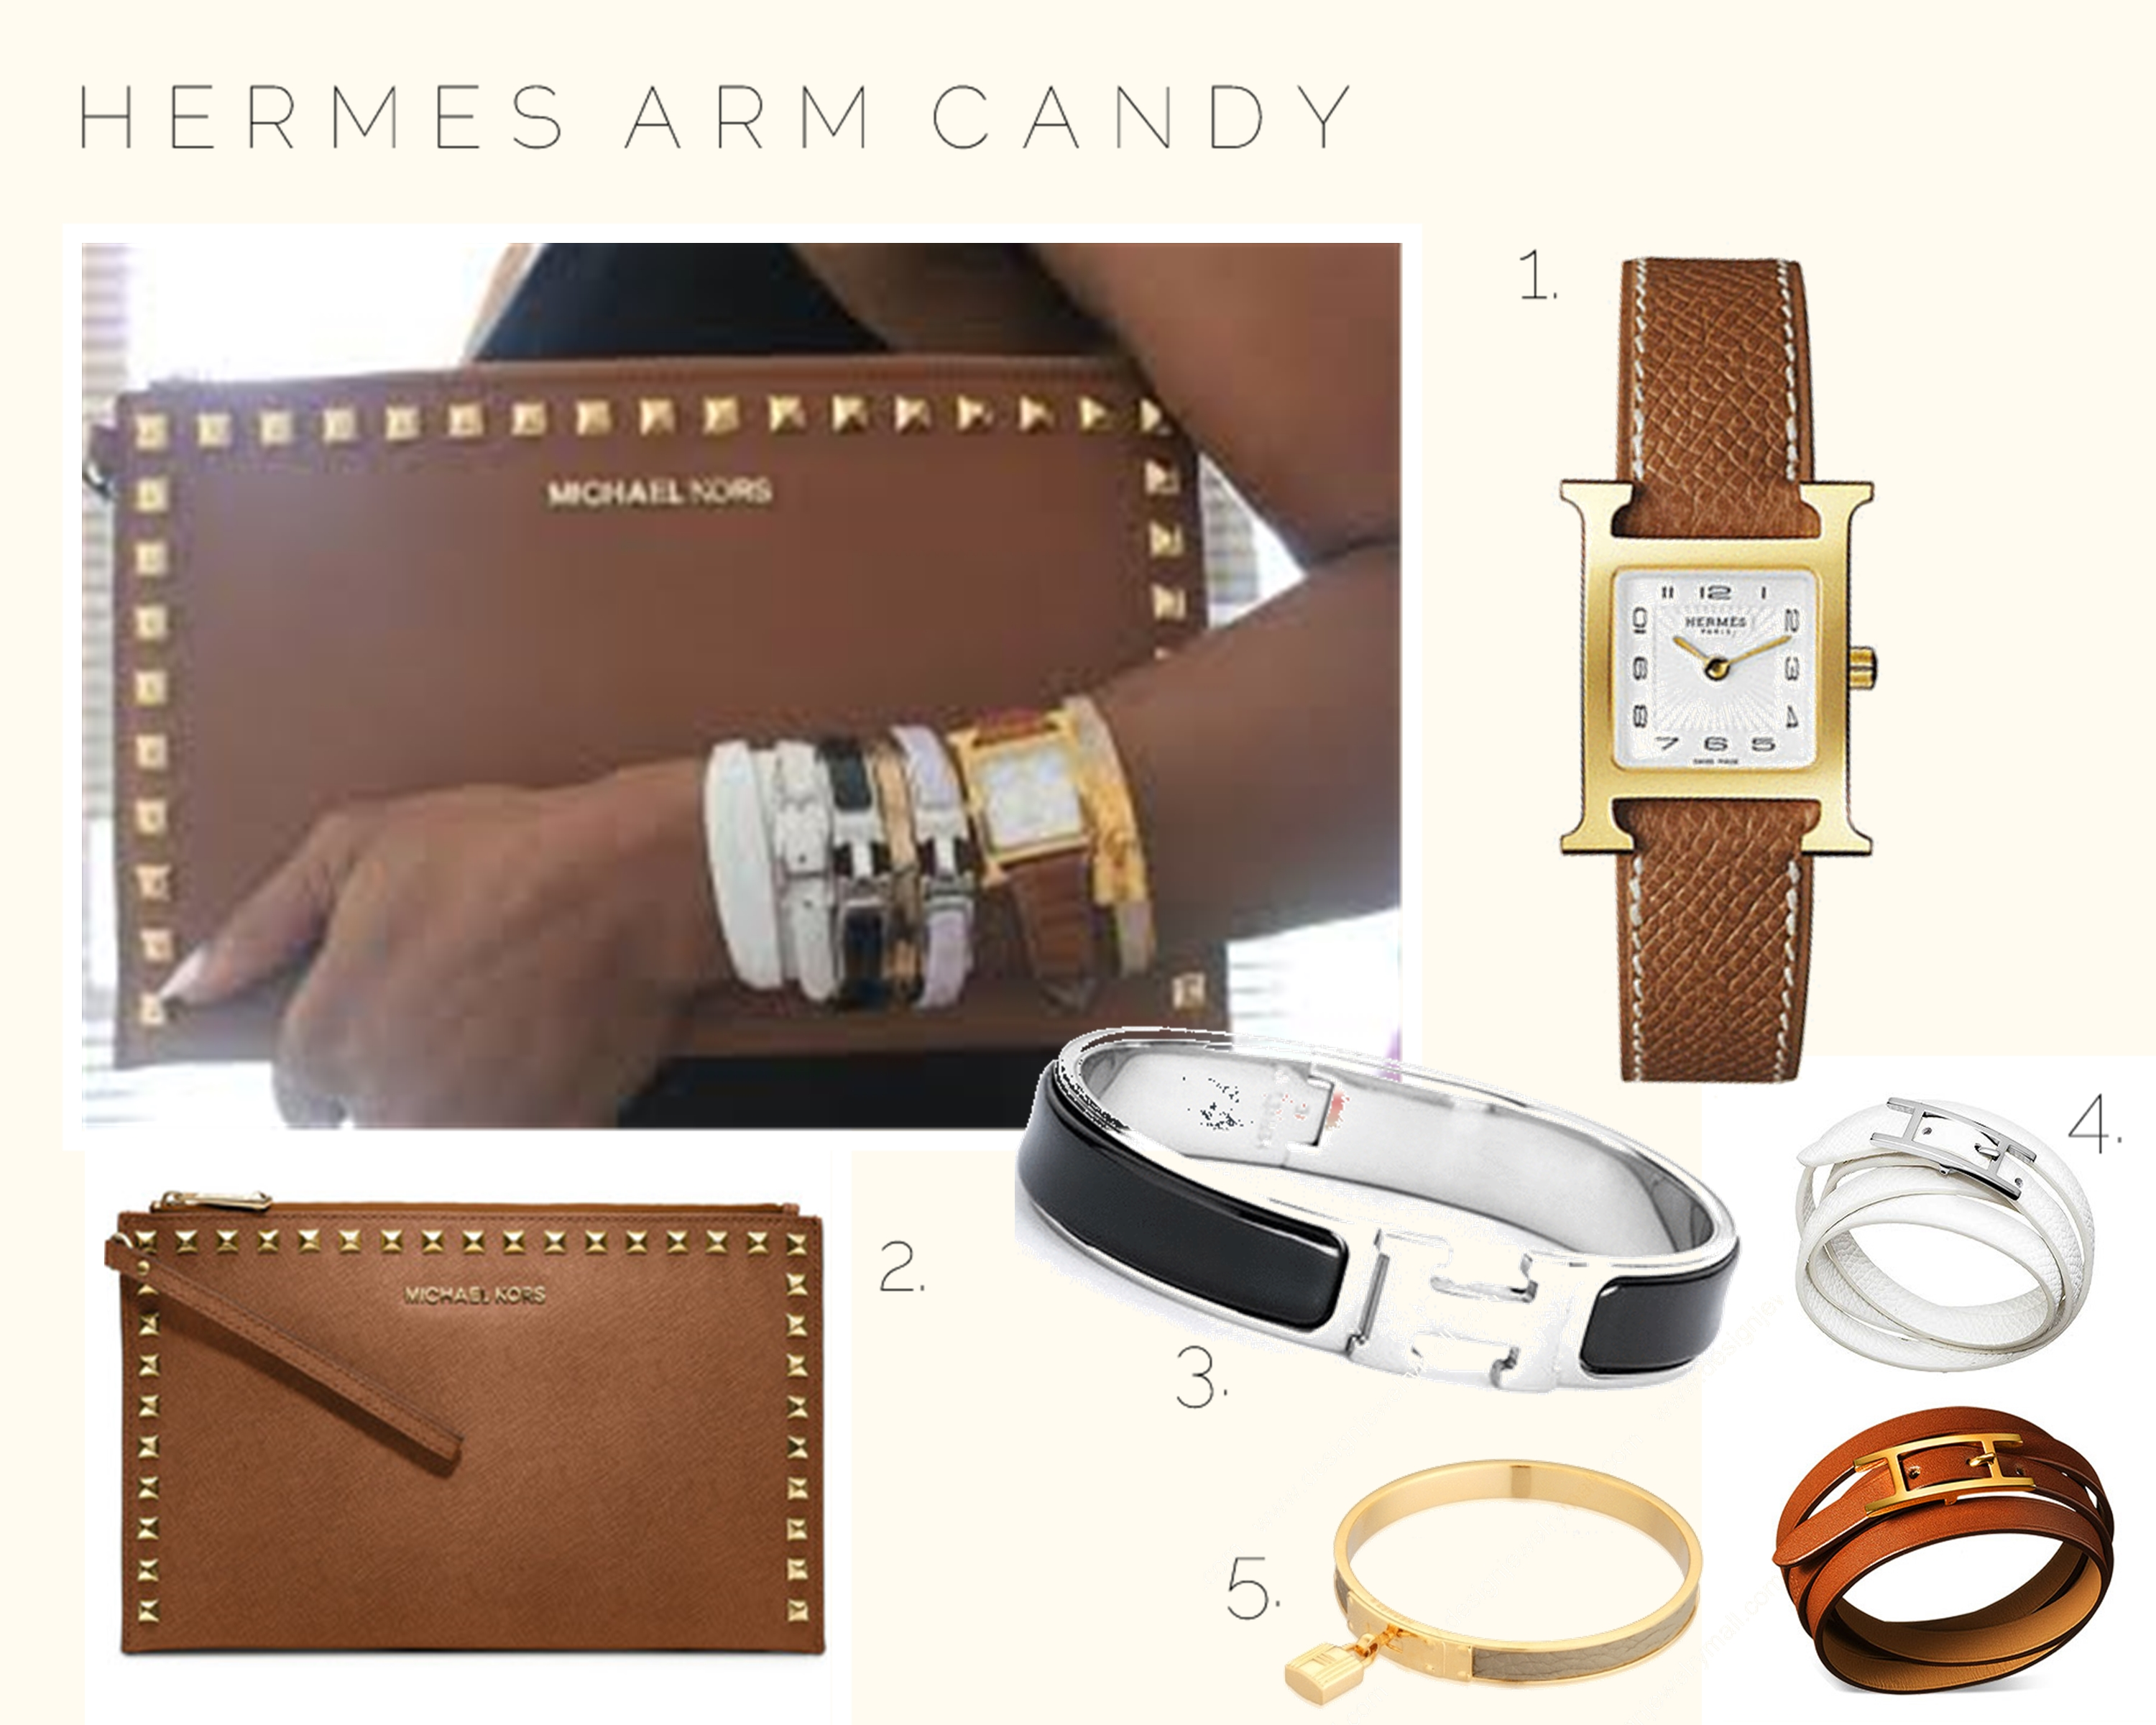 hermes paris handbag website - hermes | Myra Madeleine